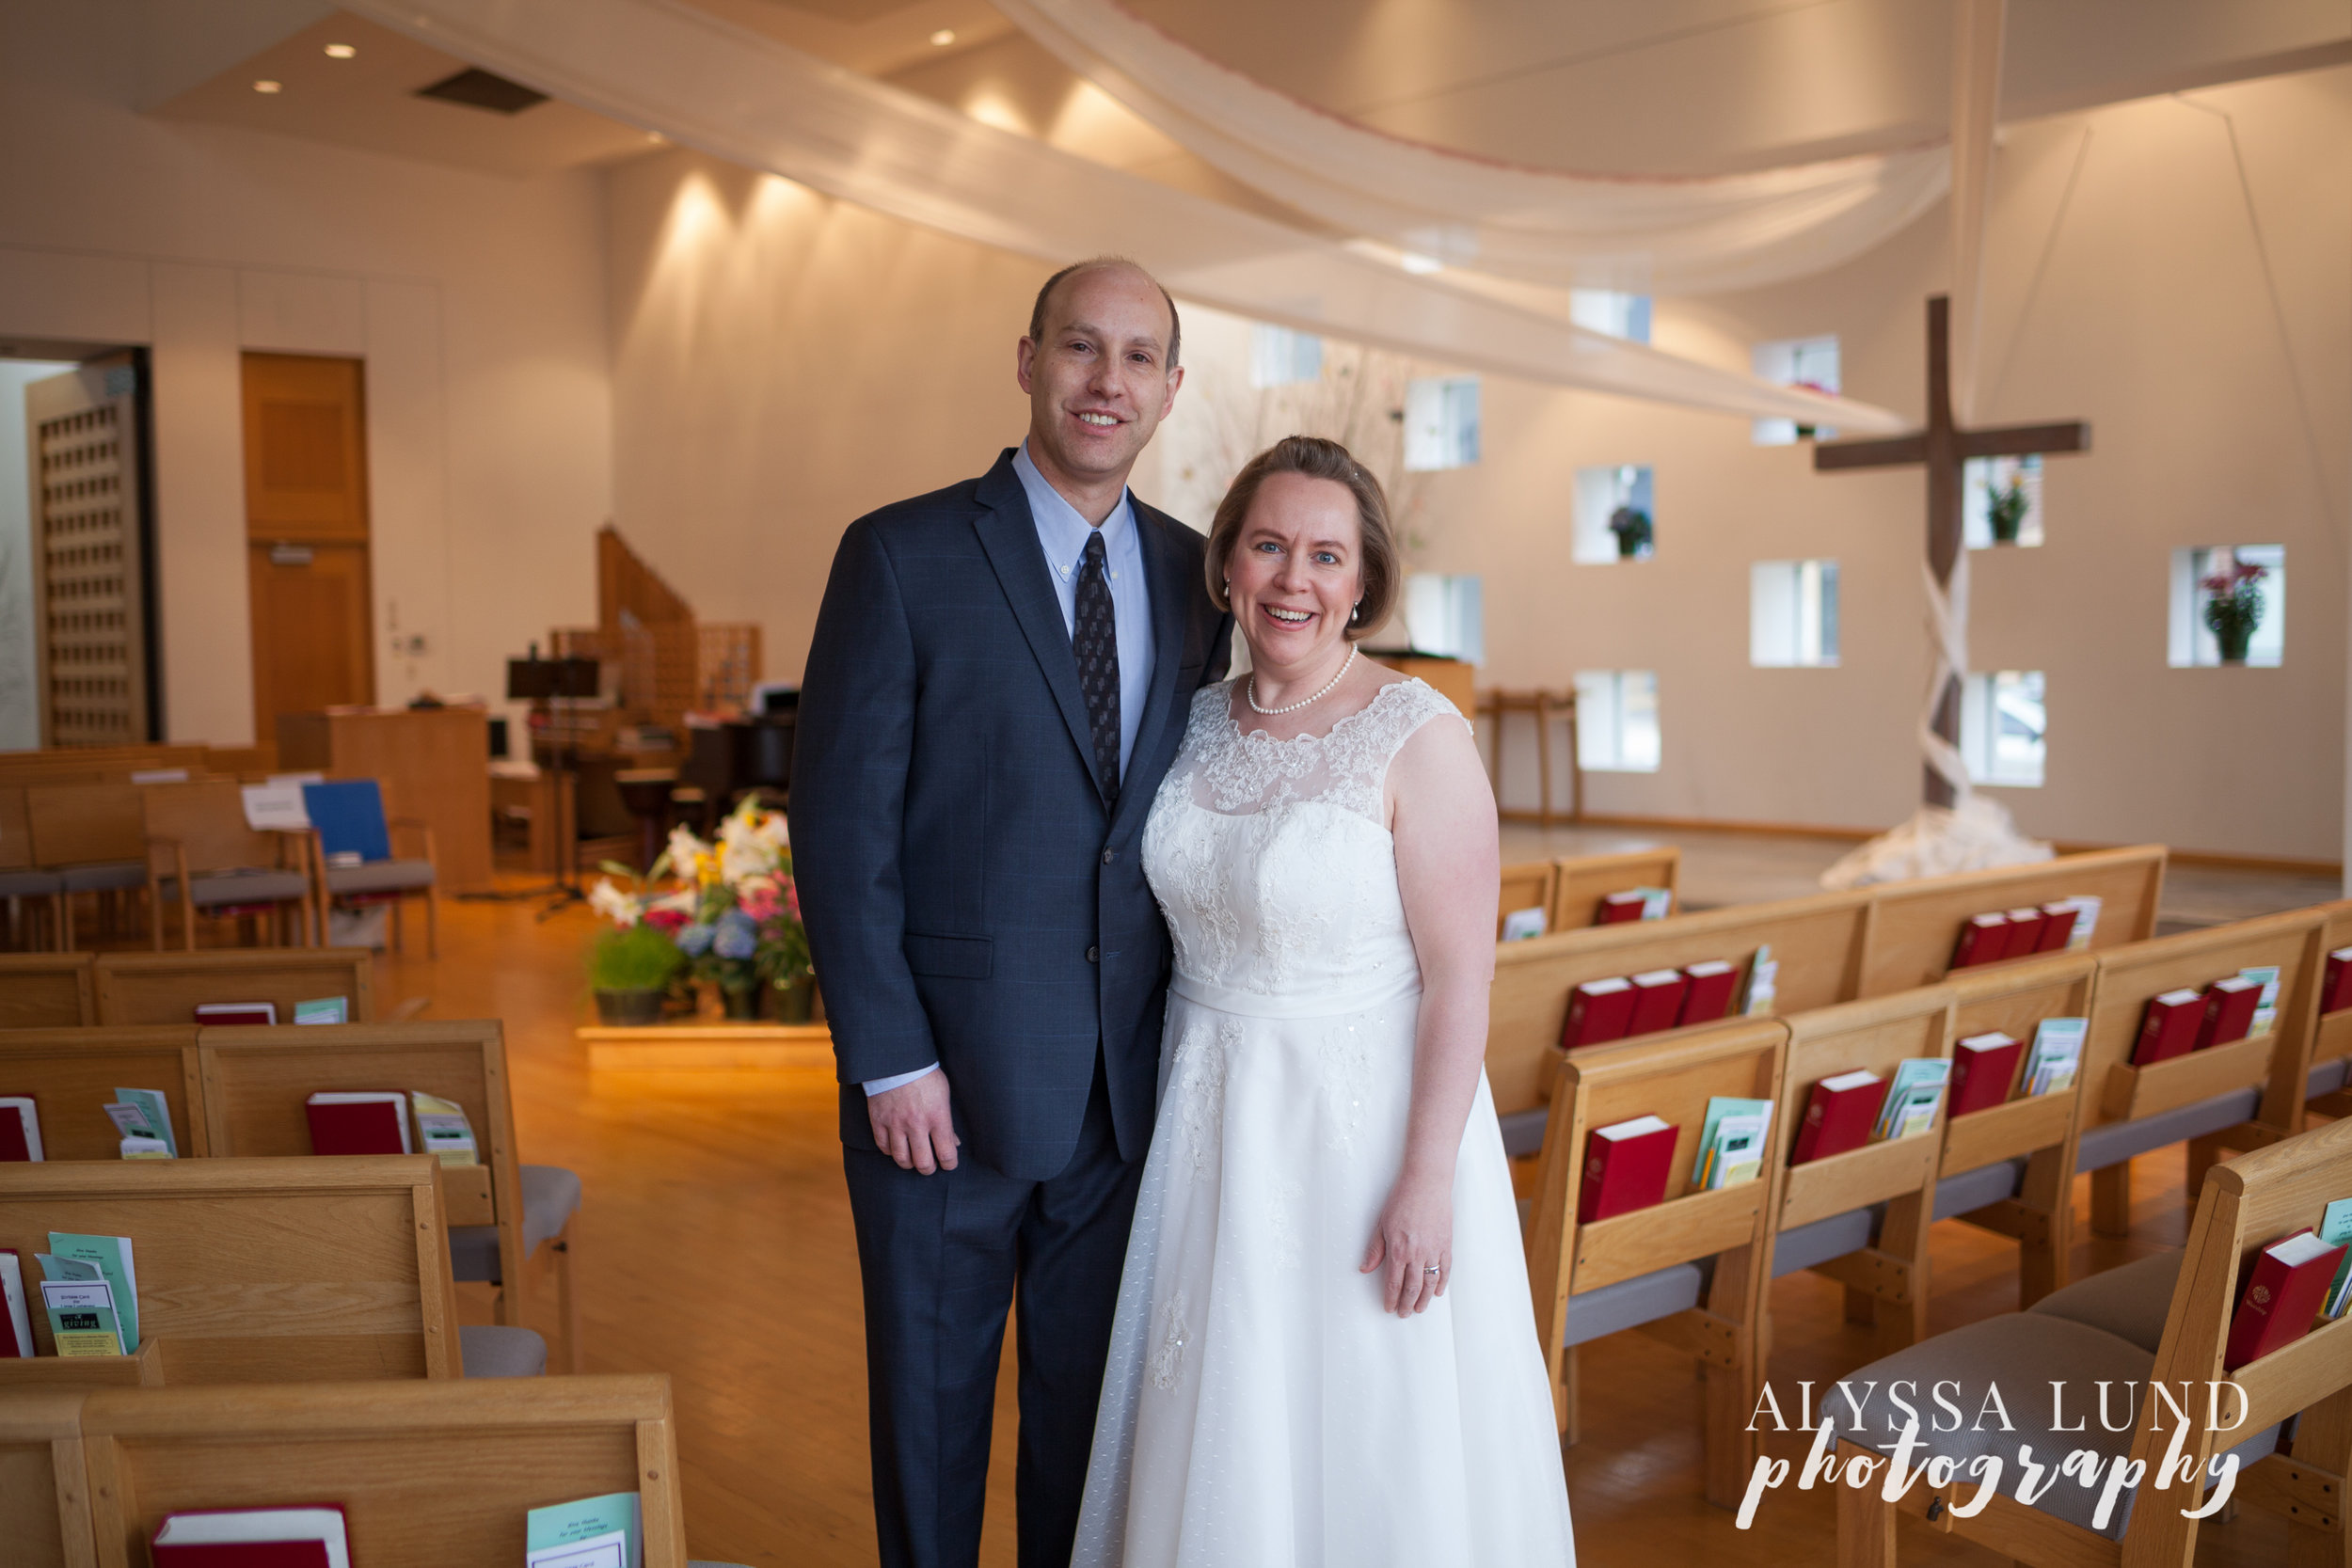 Creative Minneapolis Wedding Photography by Alyssa Lund Photography